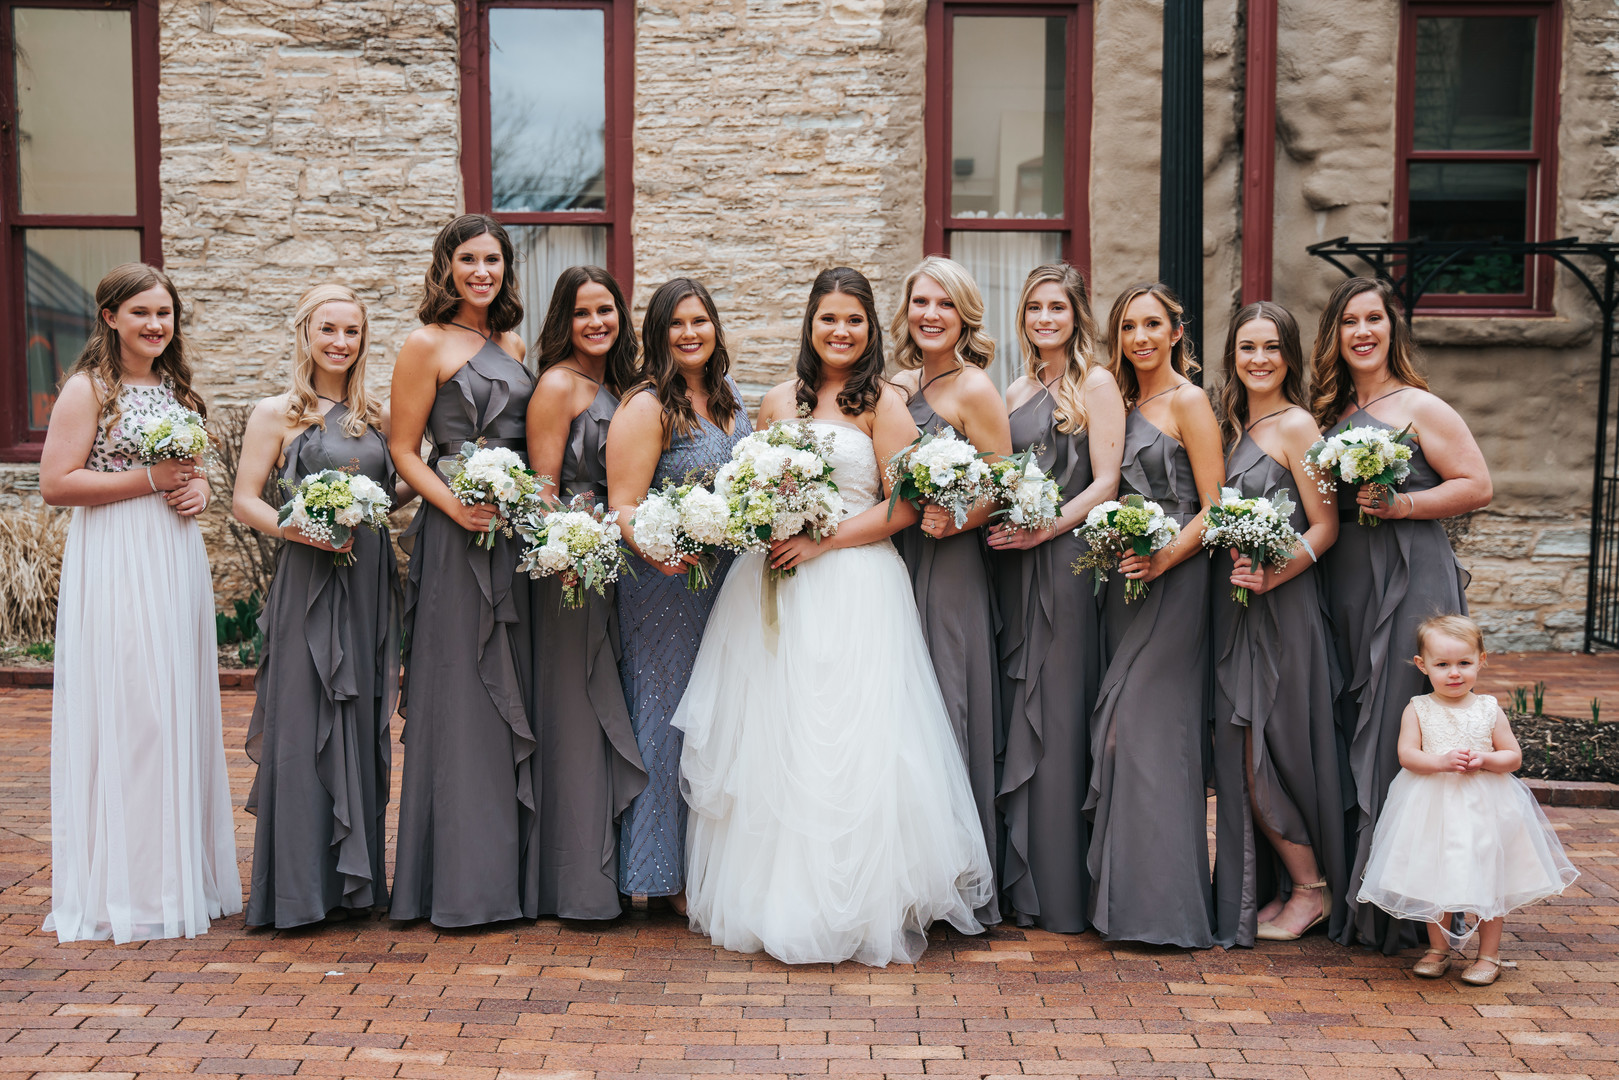 Gray bridesmaids dresses: Beautiful Illinois wedding at Riverside Receptions captured by Windy City Production. See more wedding ideas at CHItheeWED.com!